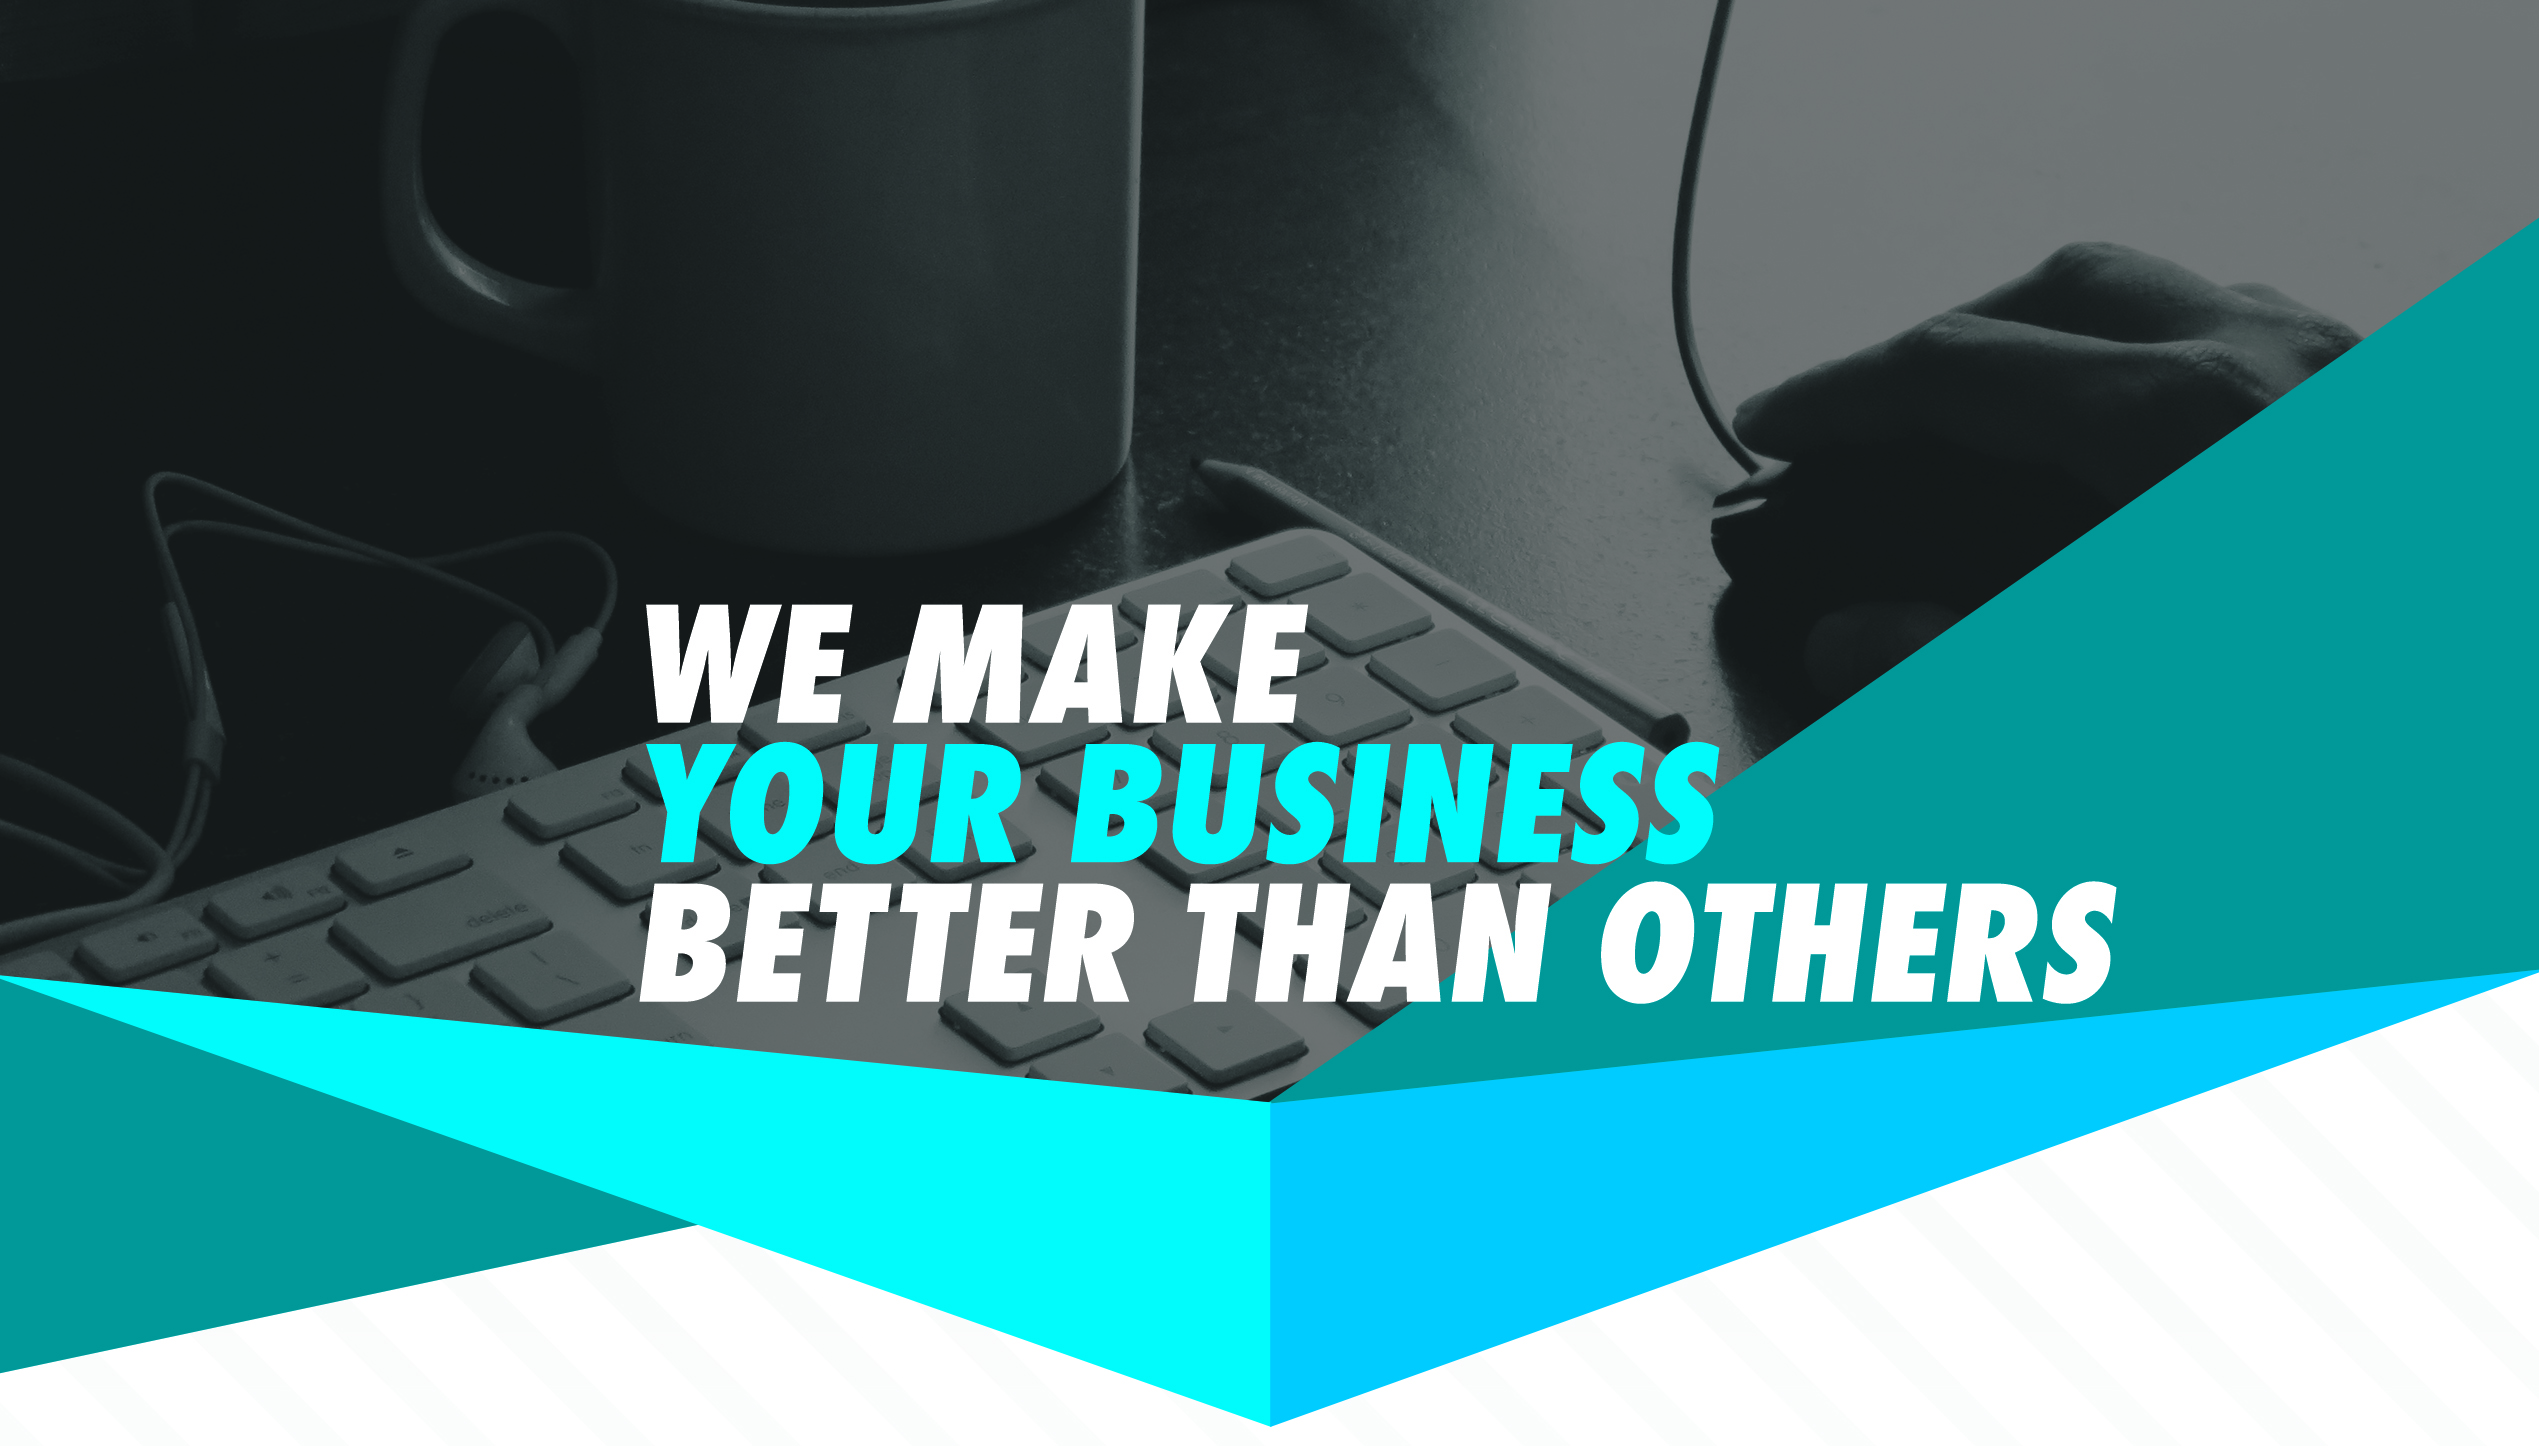 We Make Your Business Better Than Others